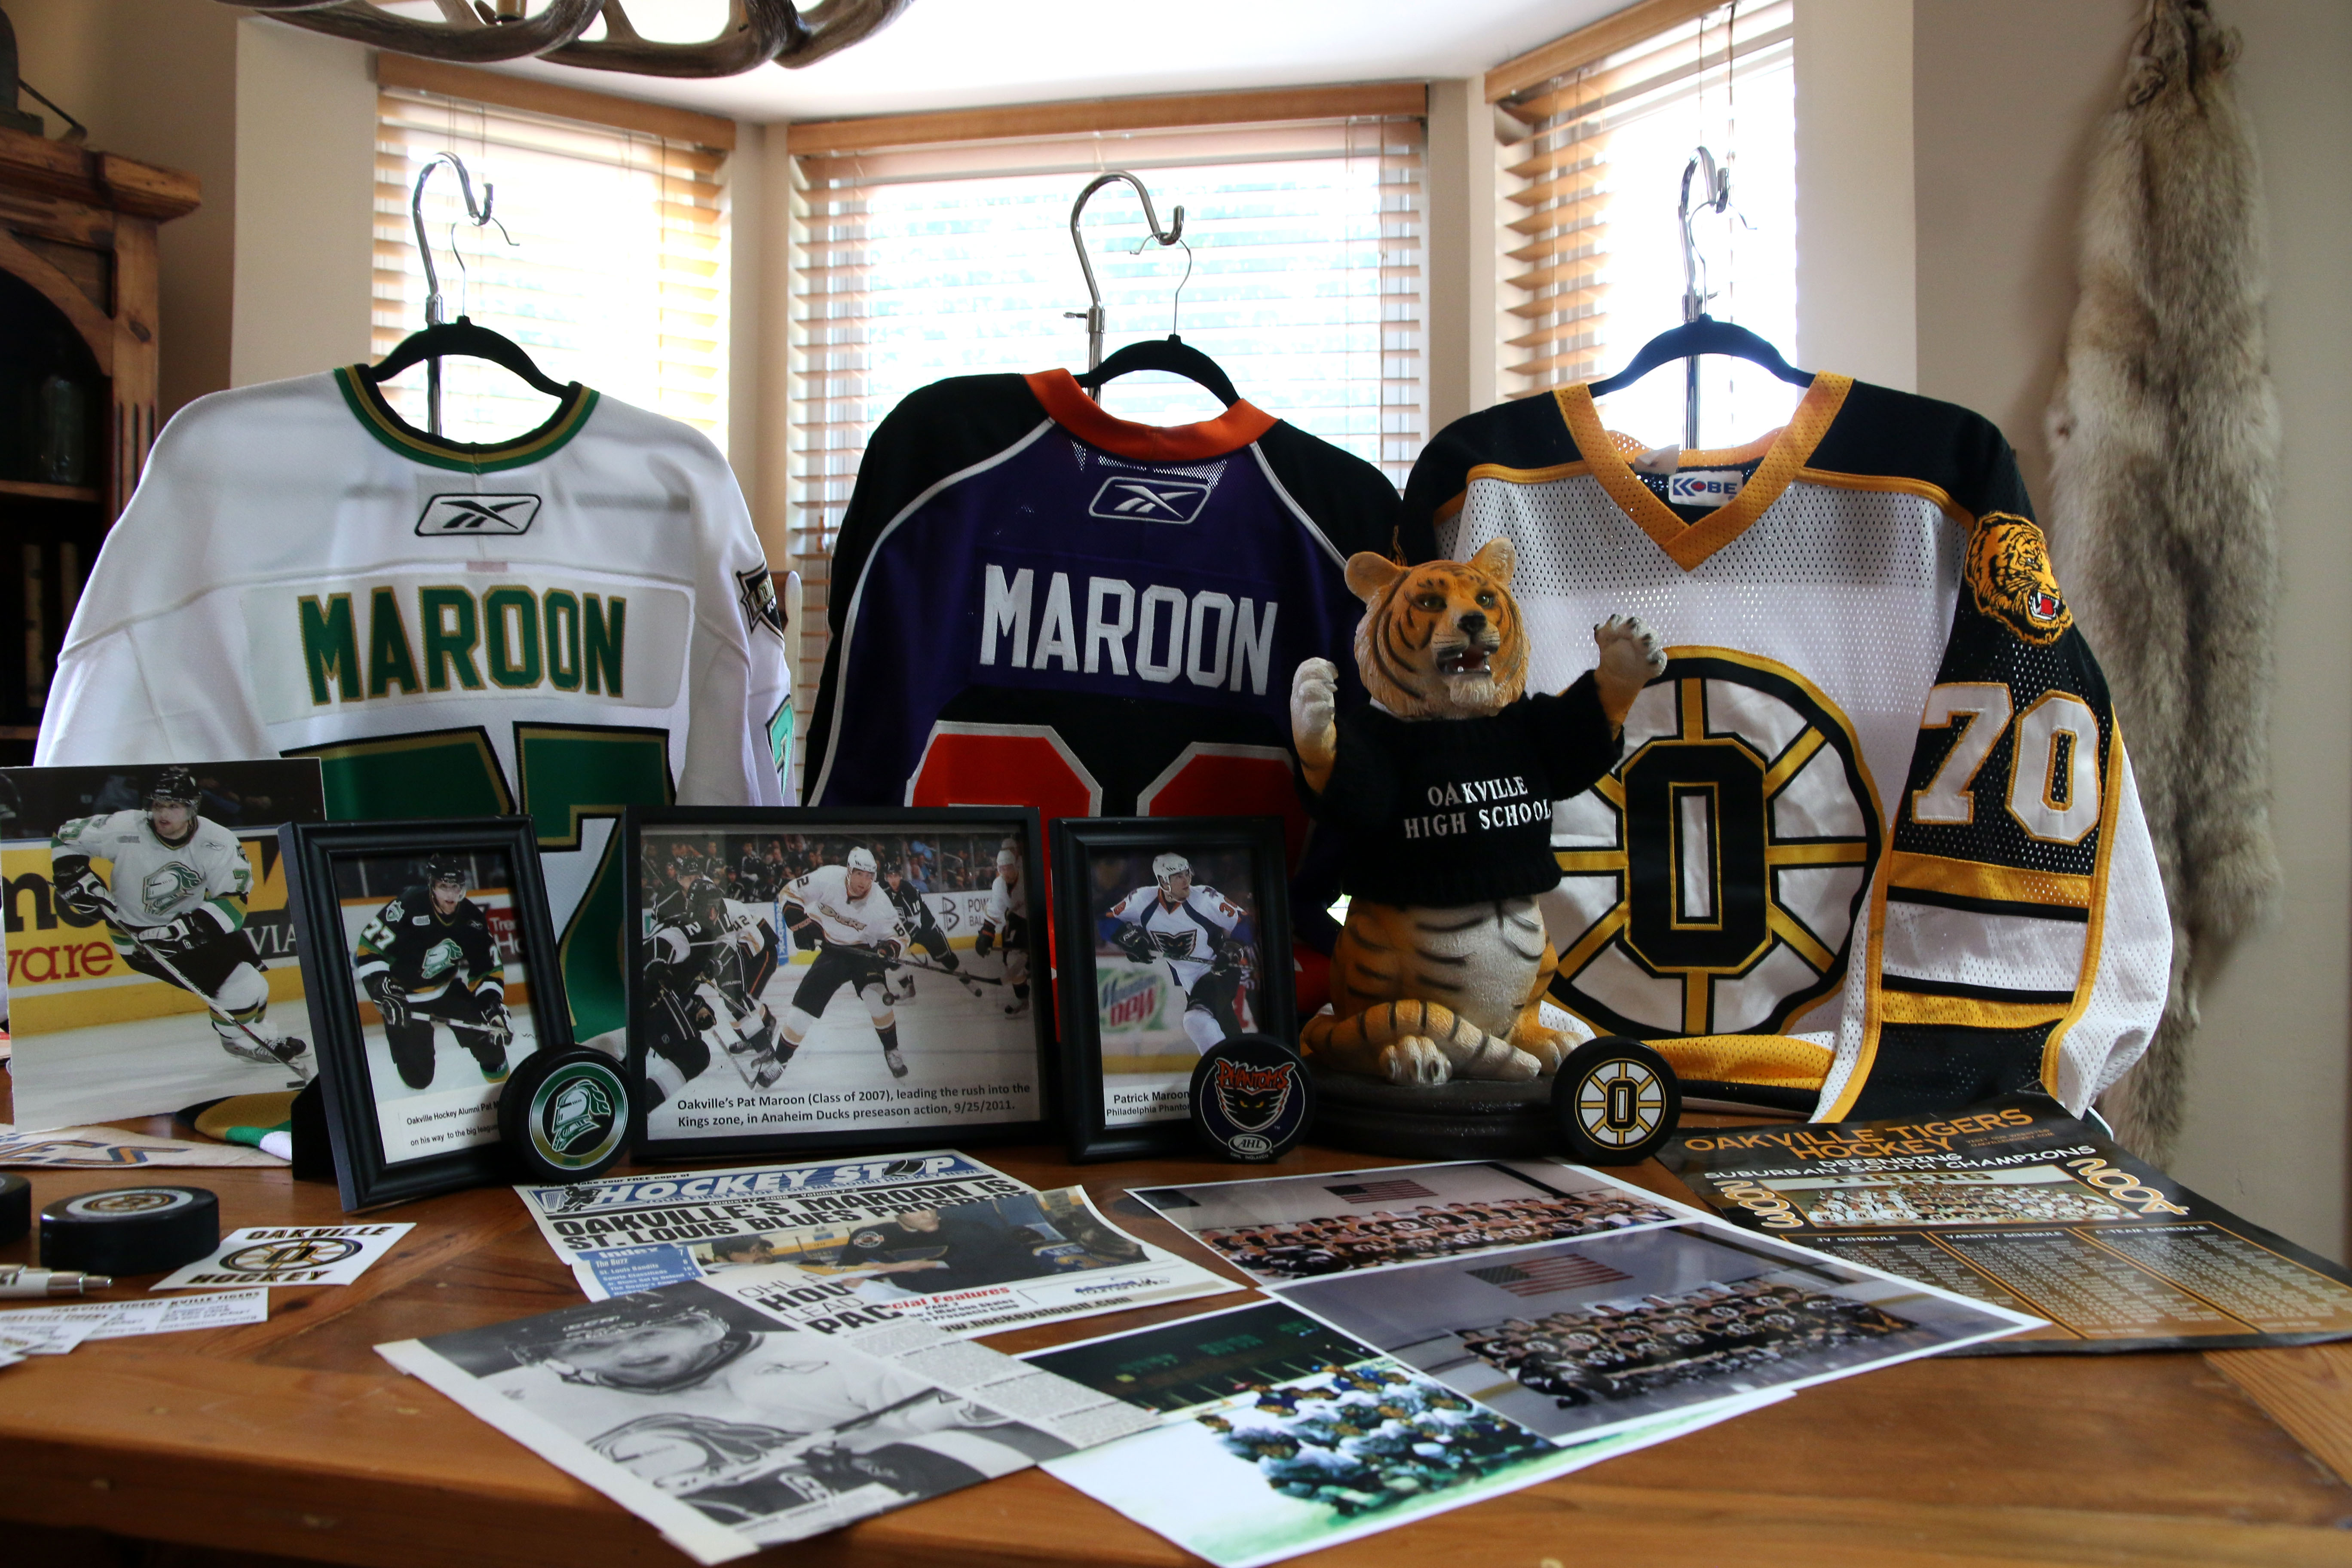 cheaper 09b97 80f85 Pat Maroon started as Oakville's hockey star - Call Newspapers